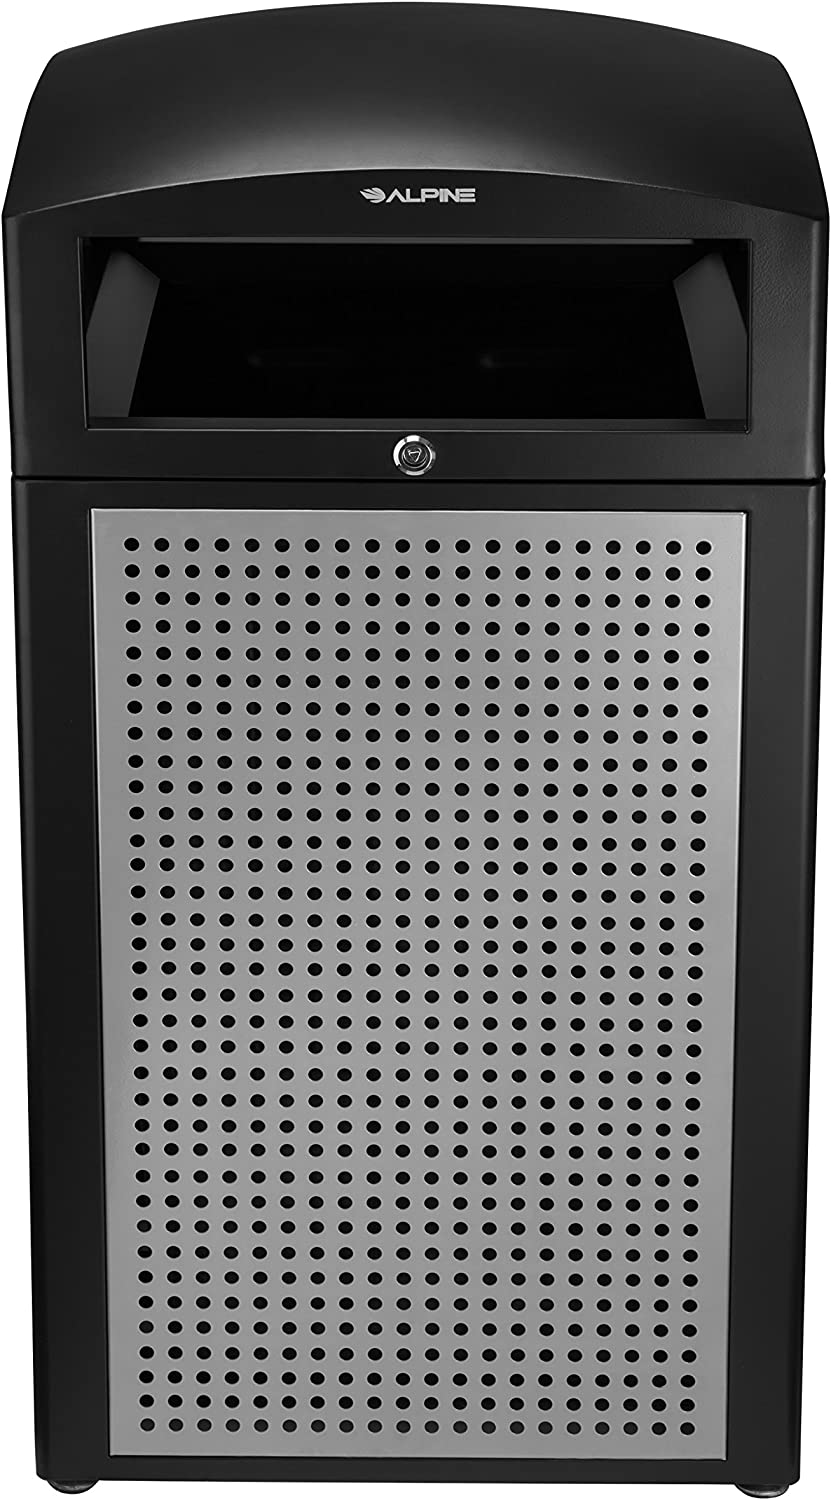 Alpine Industries Rugged 40-Gallon All-Weather Outdoor Recycle Bin Trash Can Container (Without Ash Tray, Steel Panels)